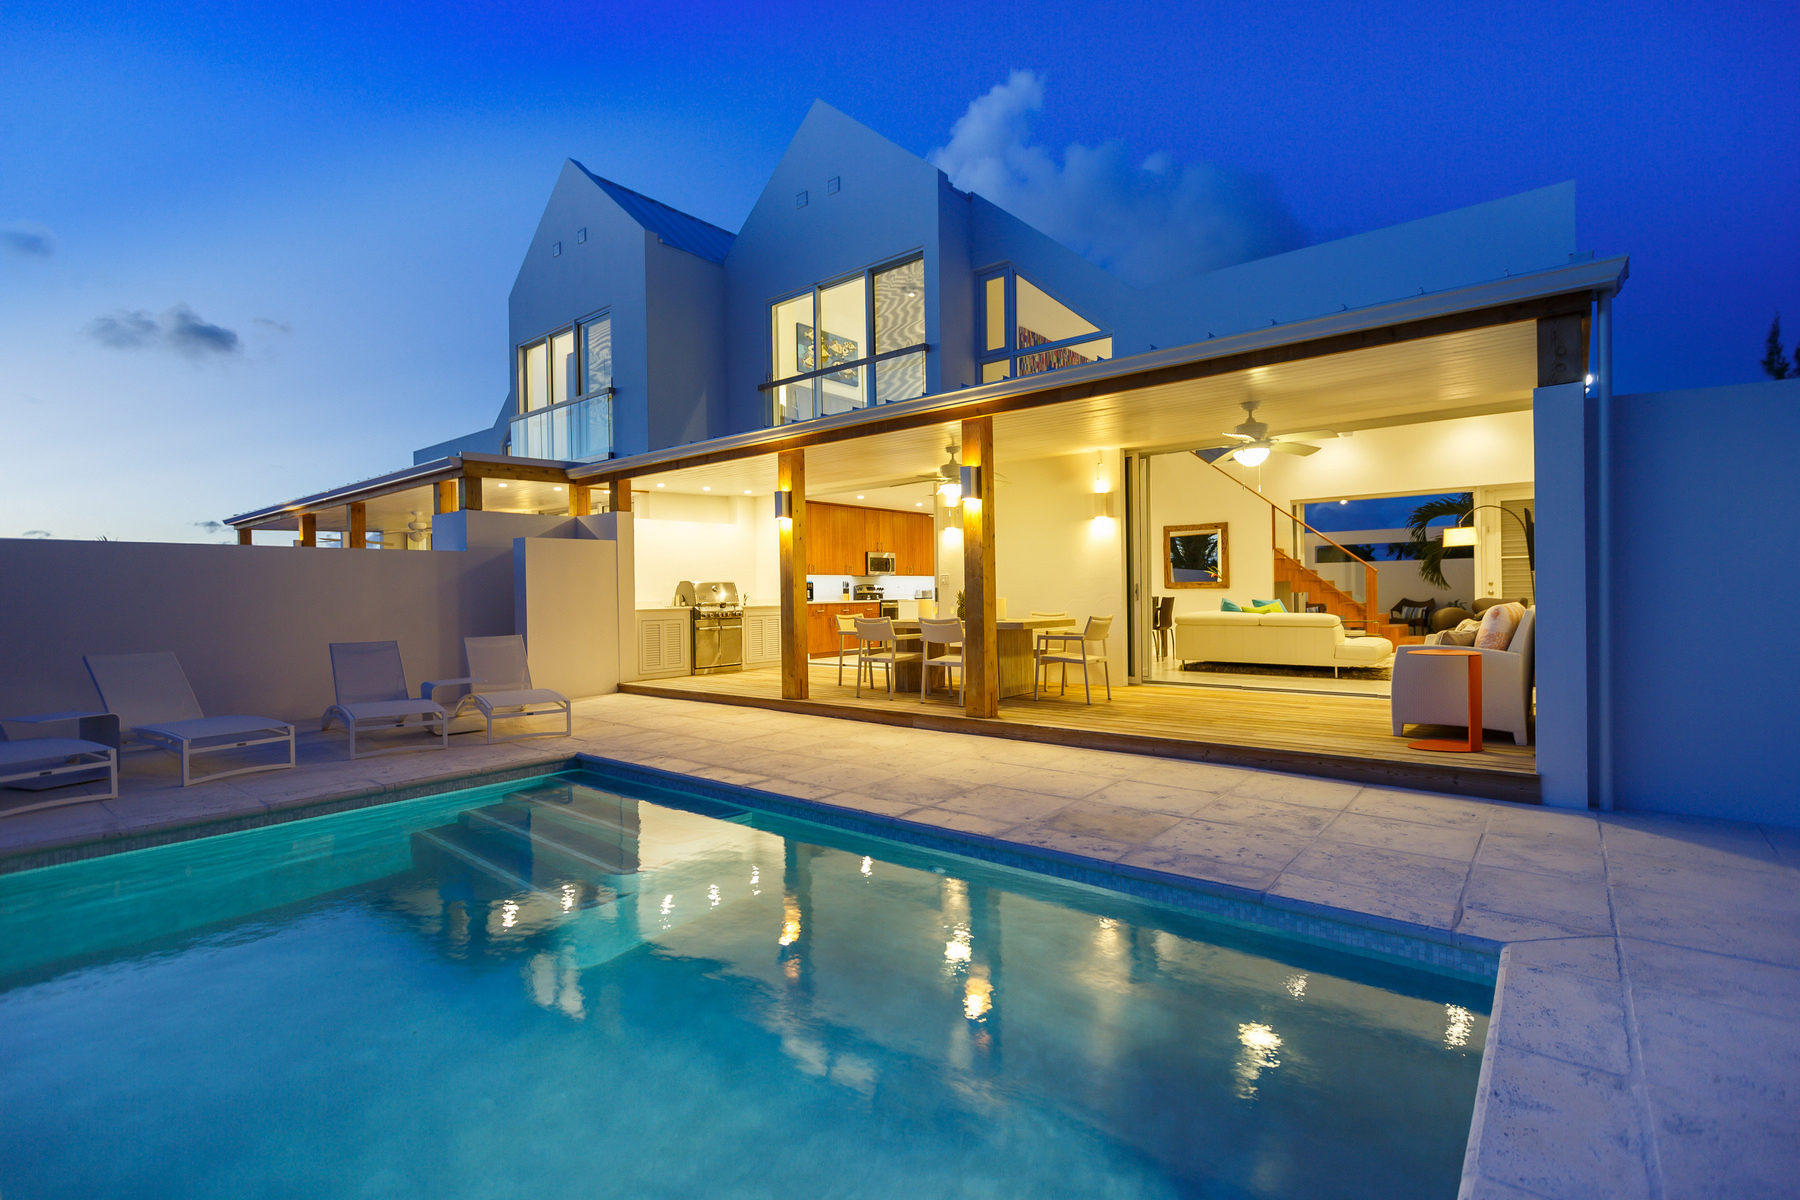 Single Family Home for Sale at Sunset Beach Villas - Design A Gardenview Leeward, TC Turks And Caicos Islands